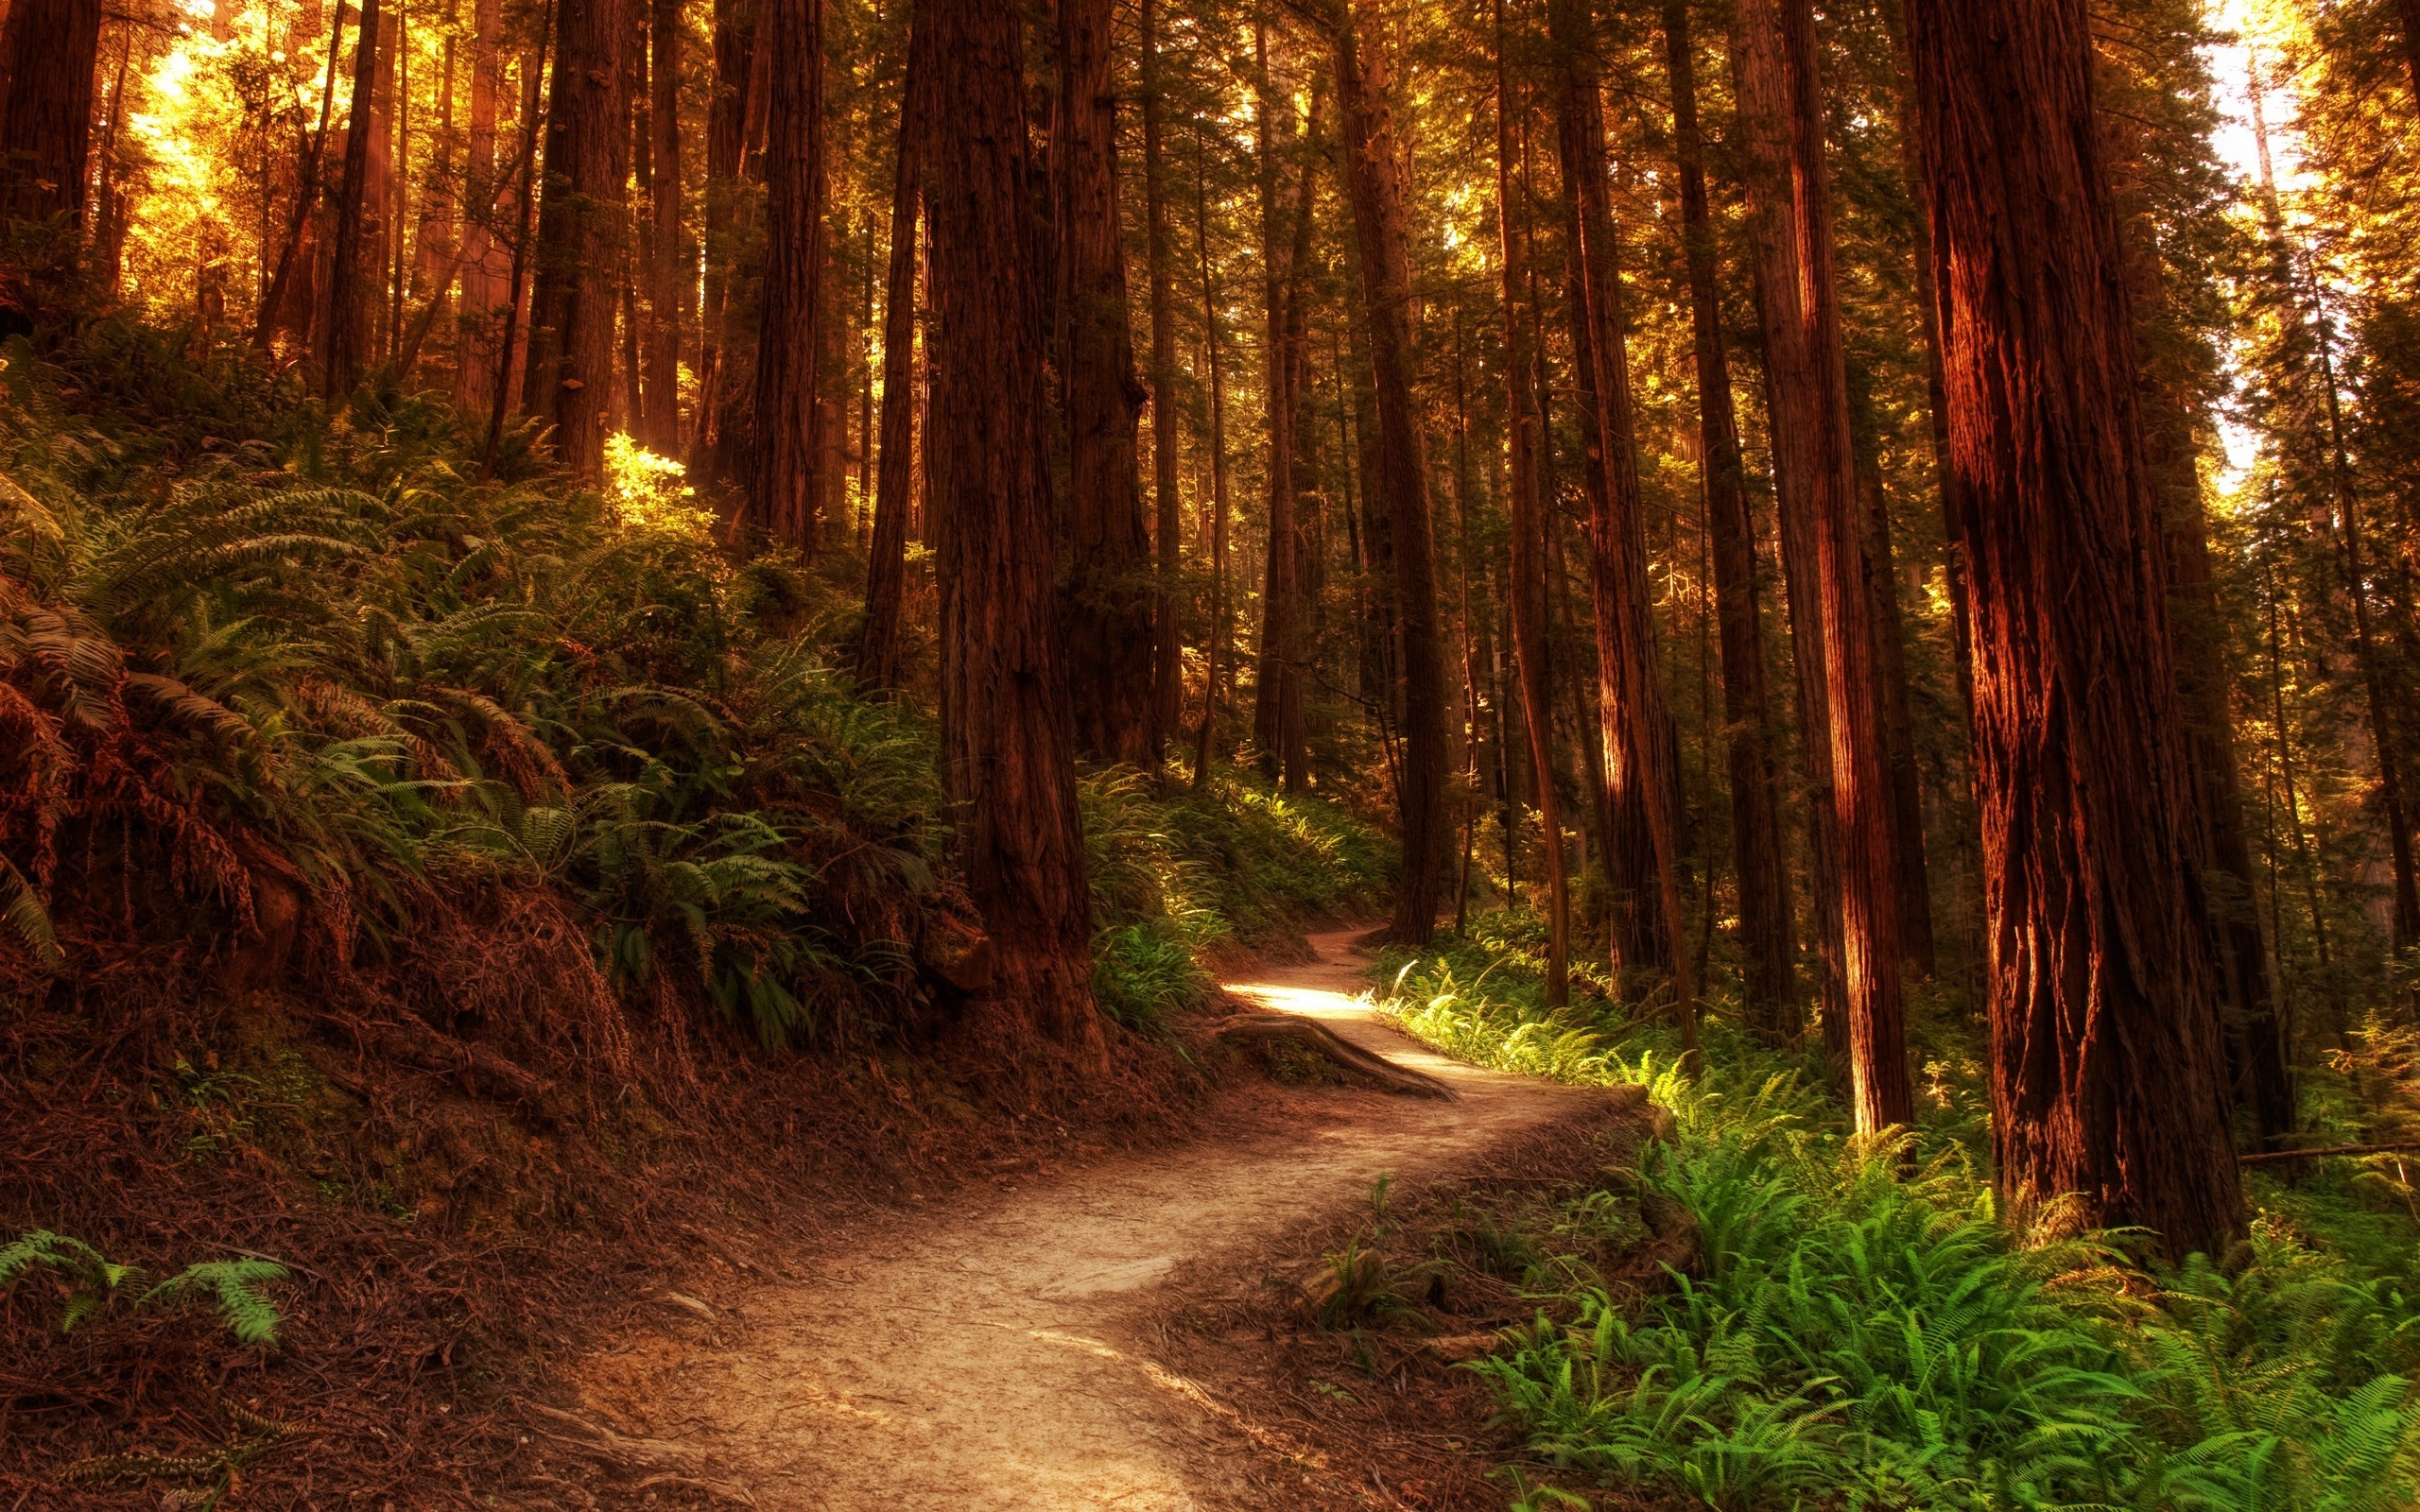 forests paths woods HD Wallpaper